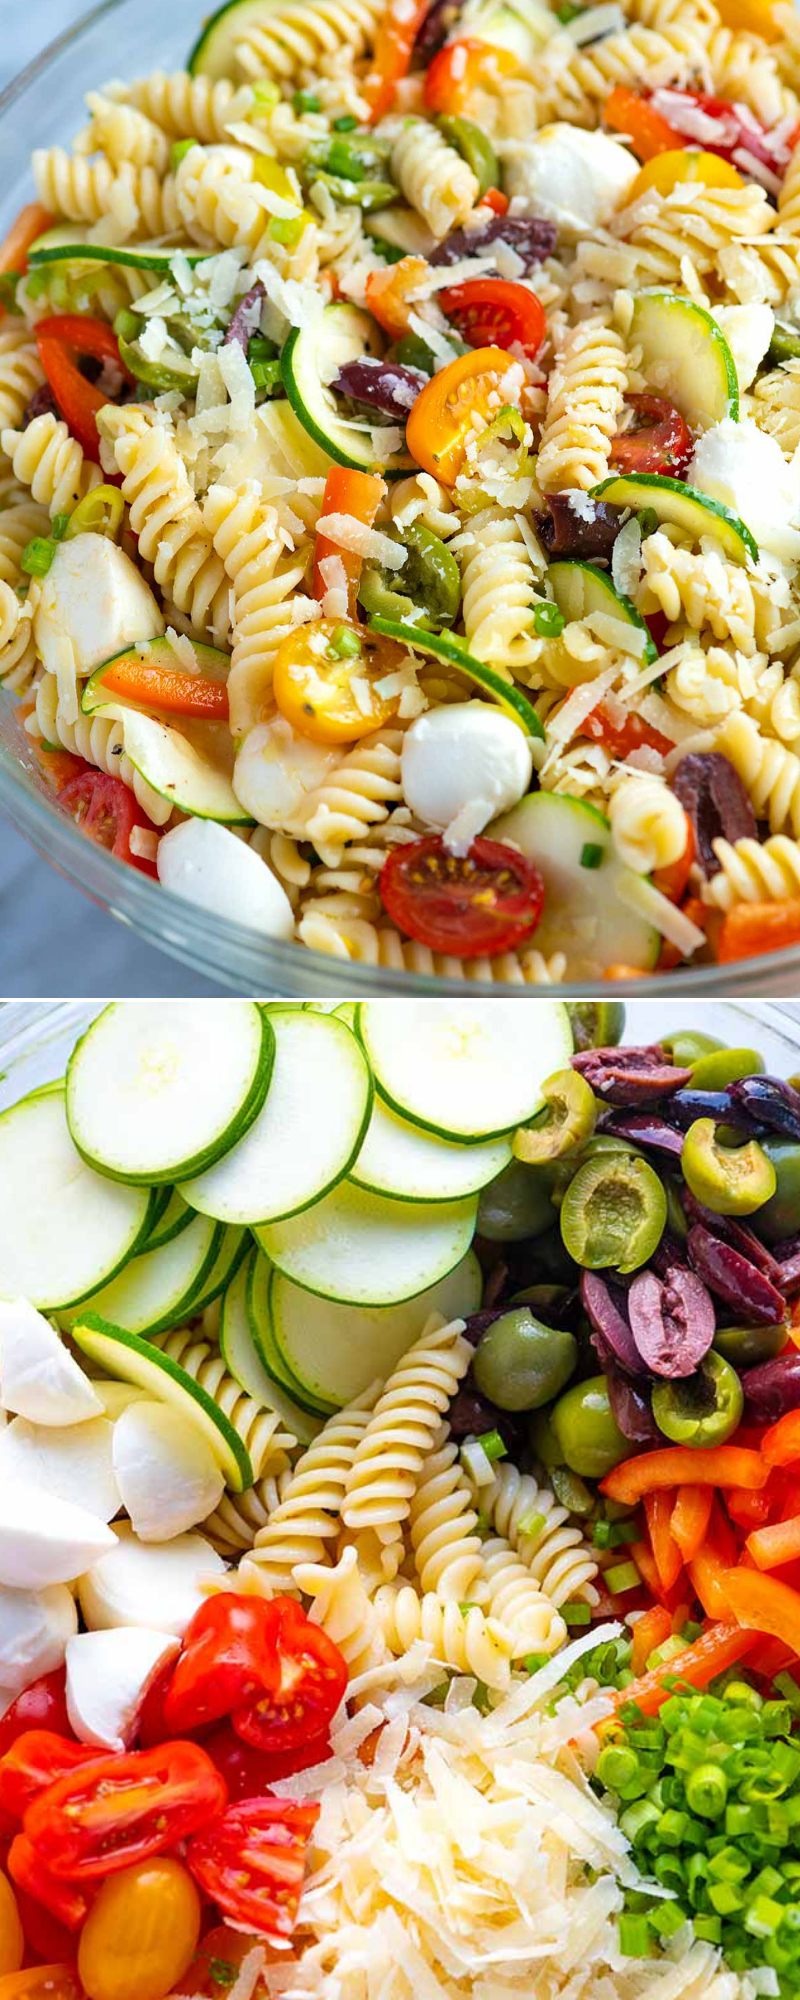 Quick and Easy Pasta Salad images